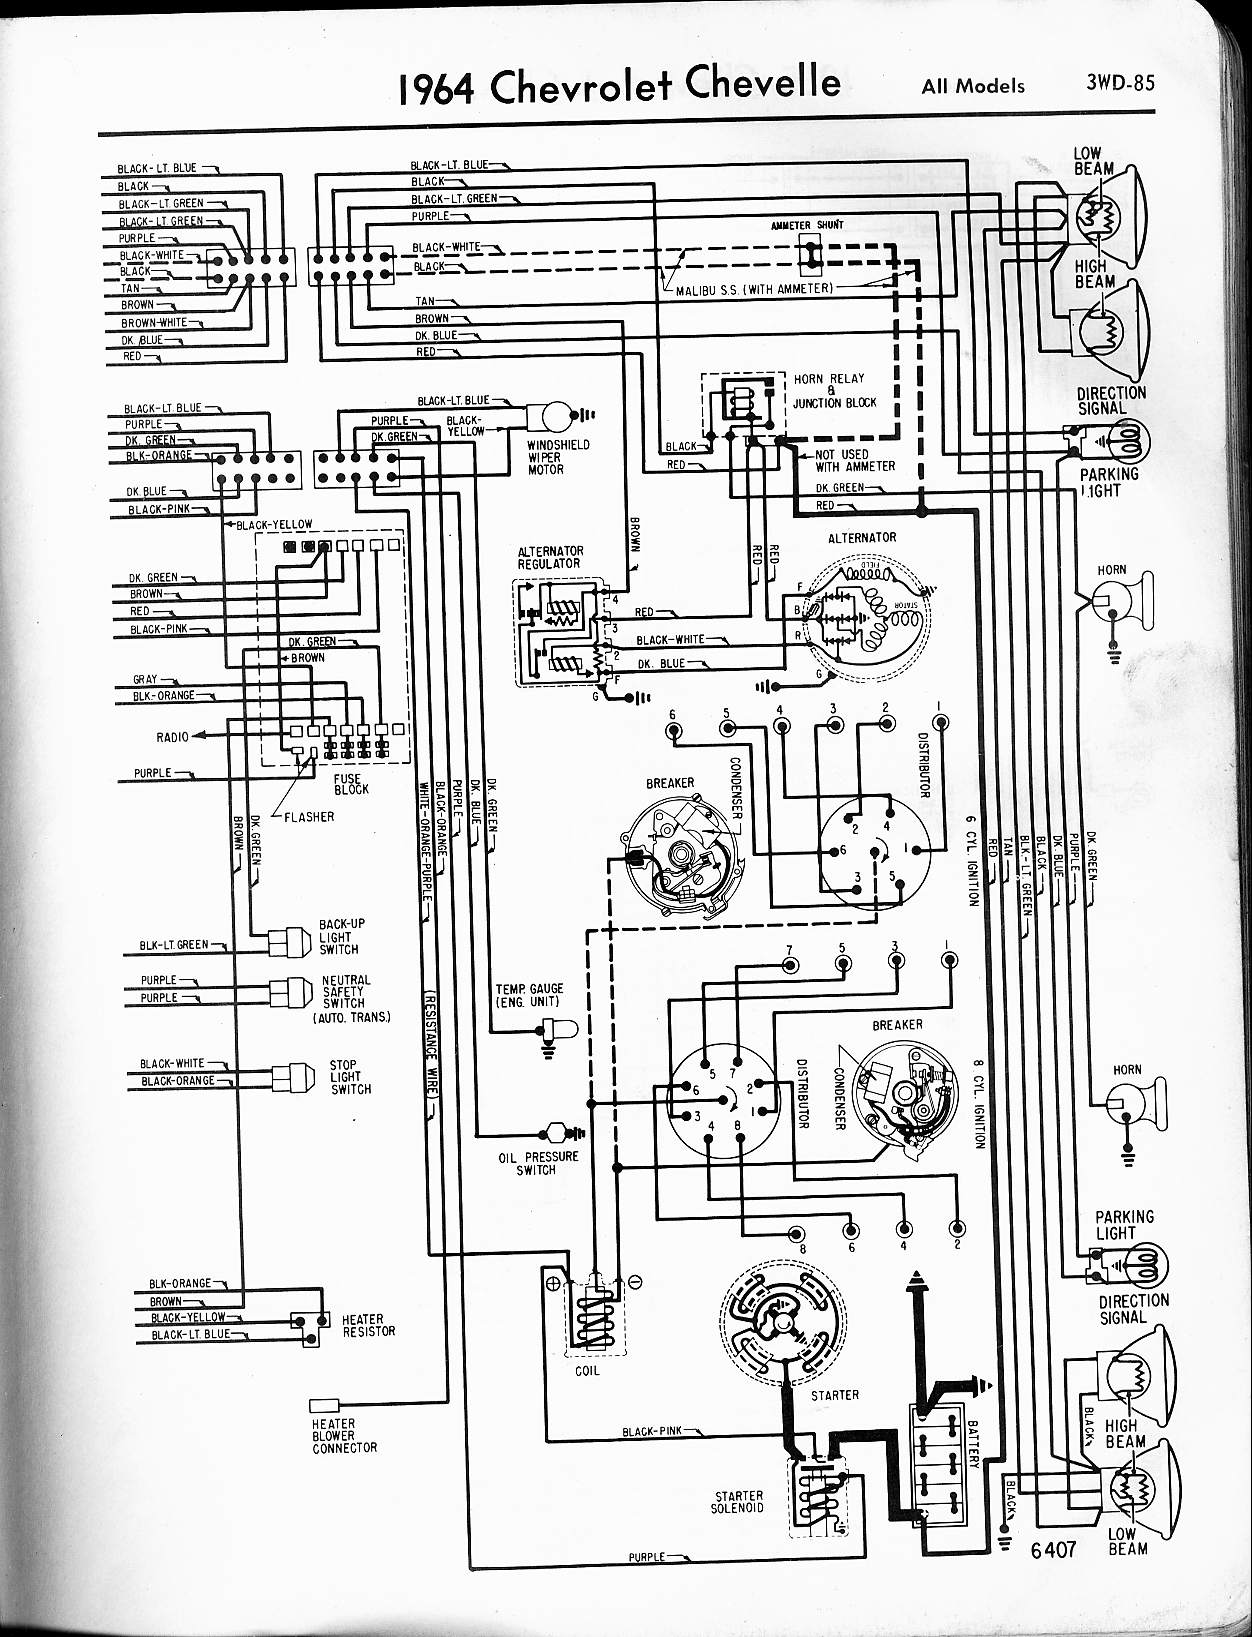 1970 Chevelle Engine Wiring Diagram 1969 Chevelle Wiring Diagram 1968